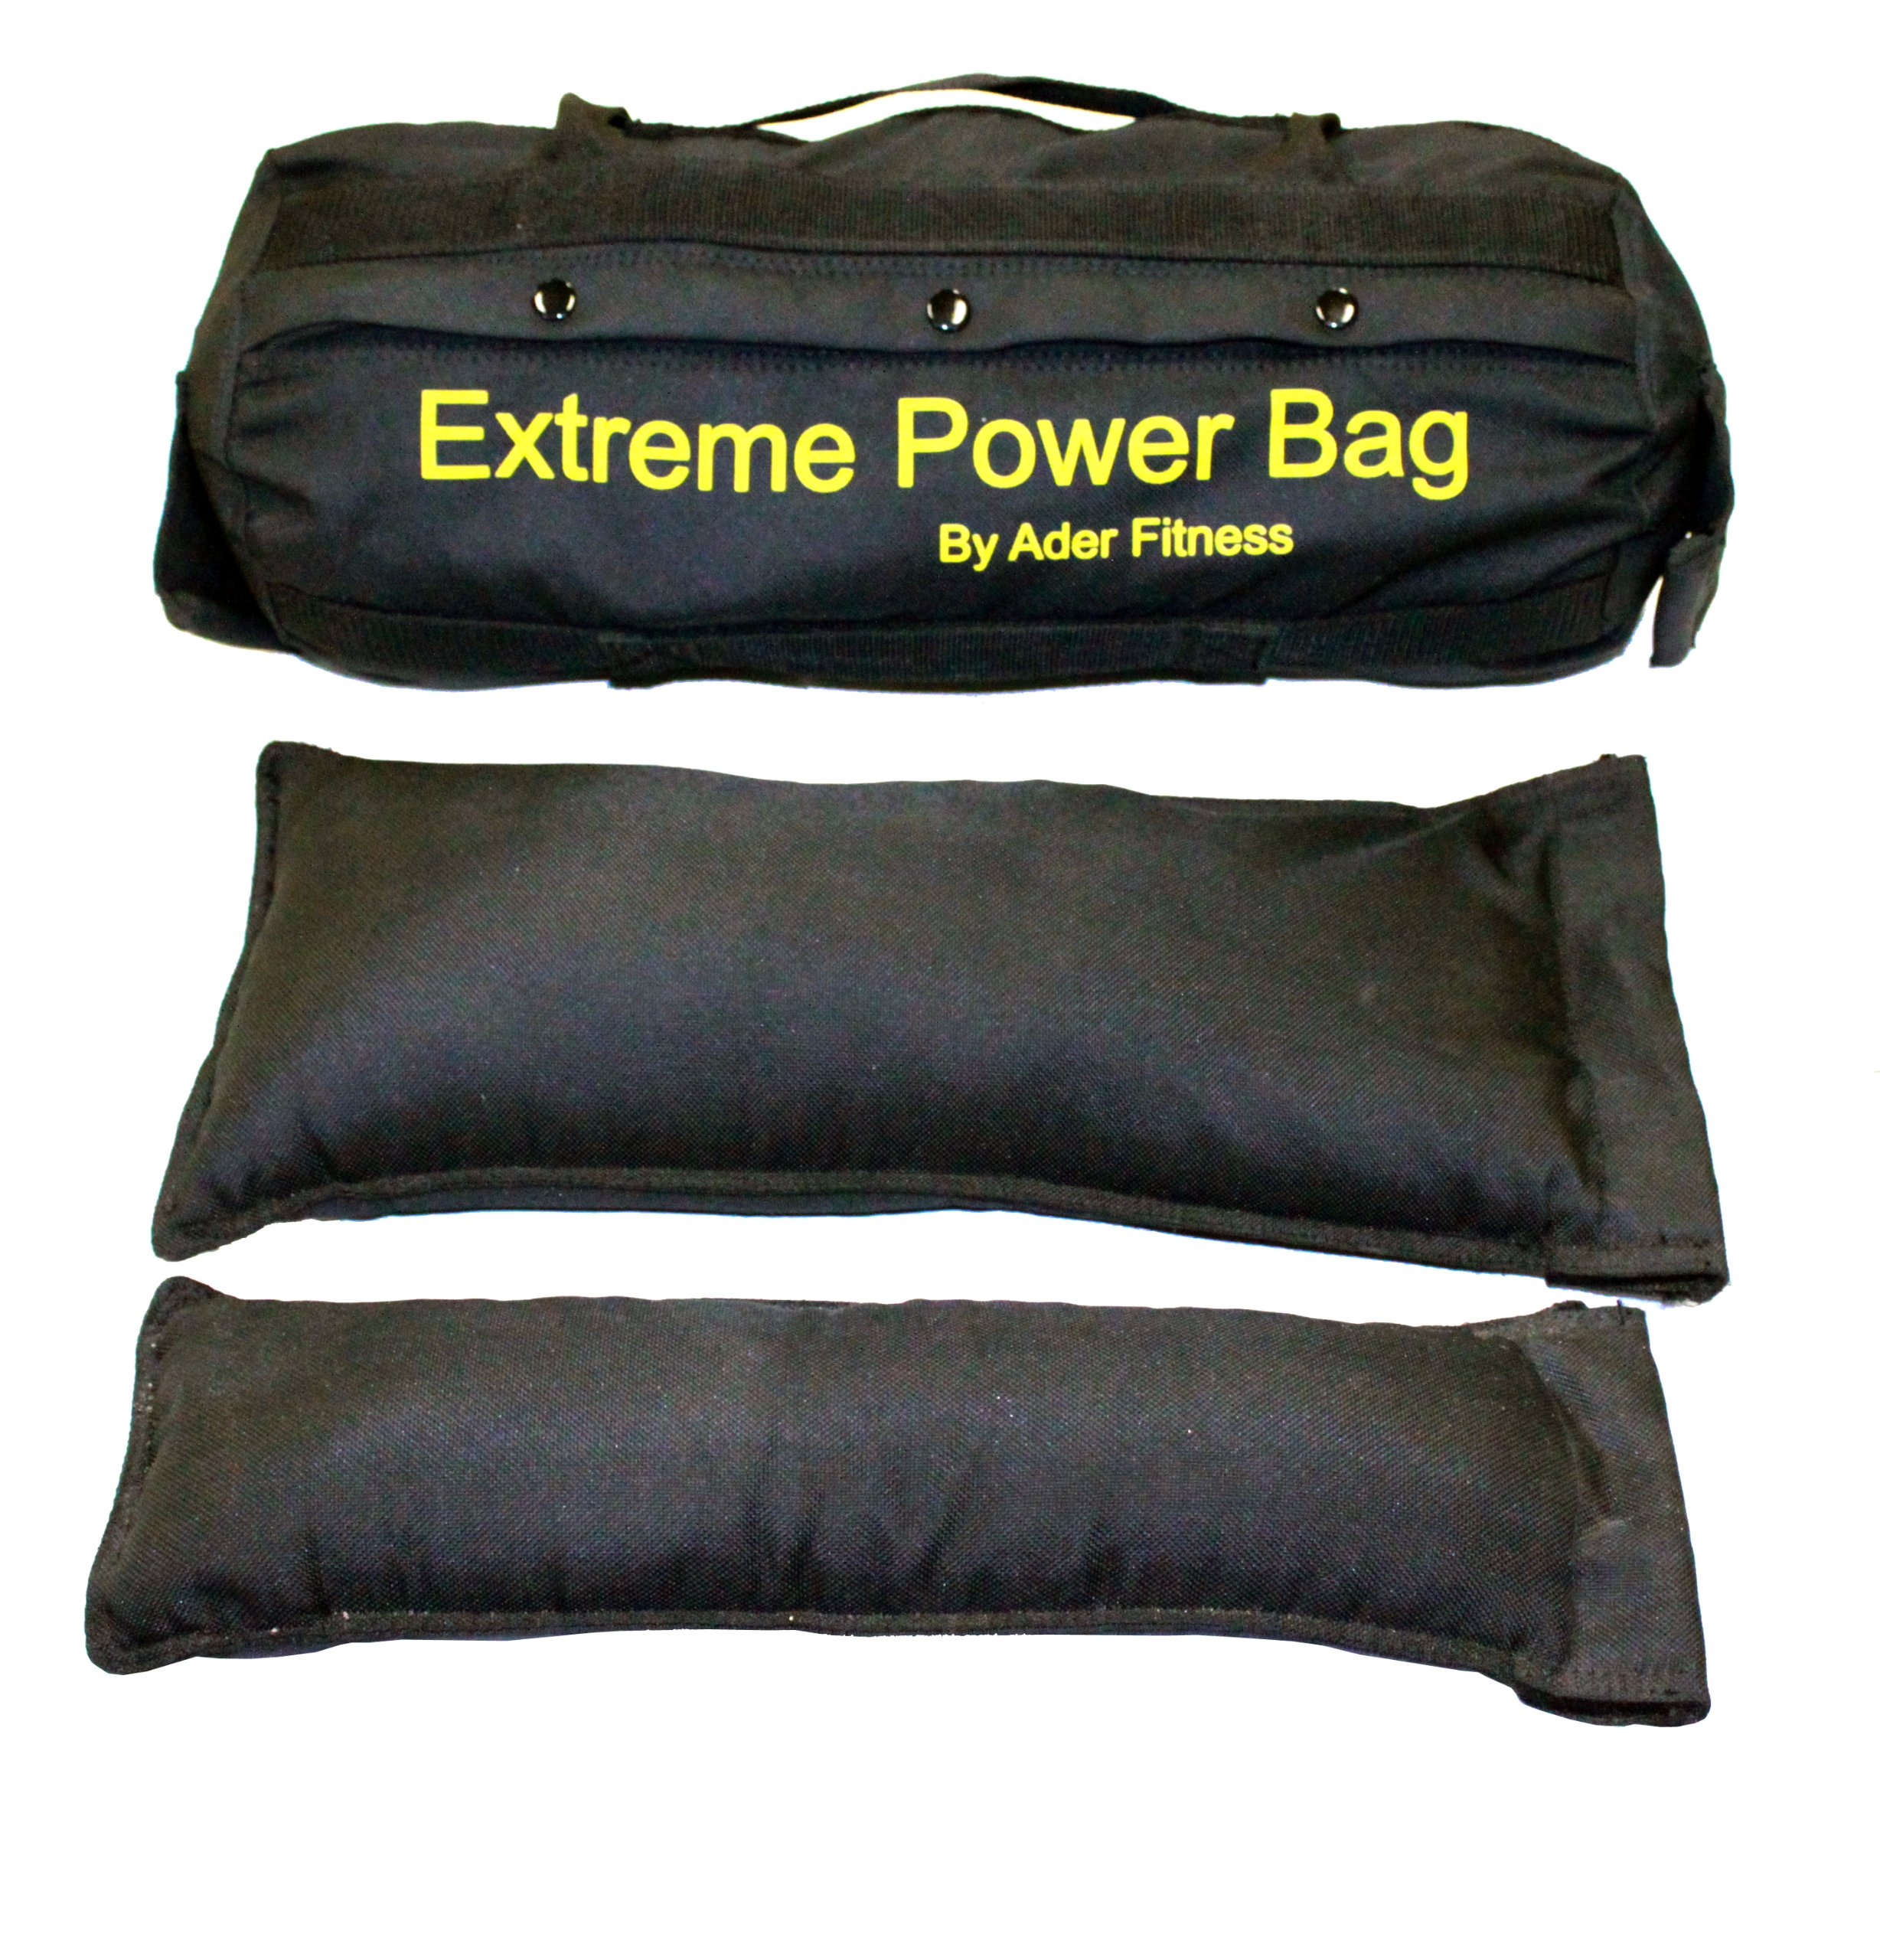 Ader Sand Bag (Large) w/ Filler Bags- (2 Small, 2 Medium, 2 Large) Hold Sand 1-150 Lb. by Extreme Power Bag (Image #1)